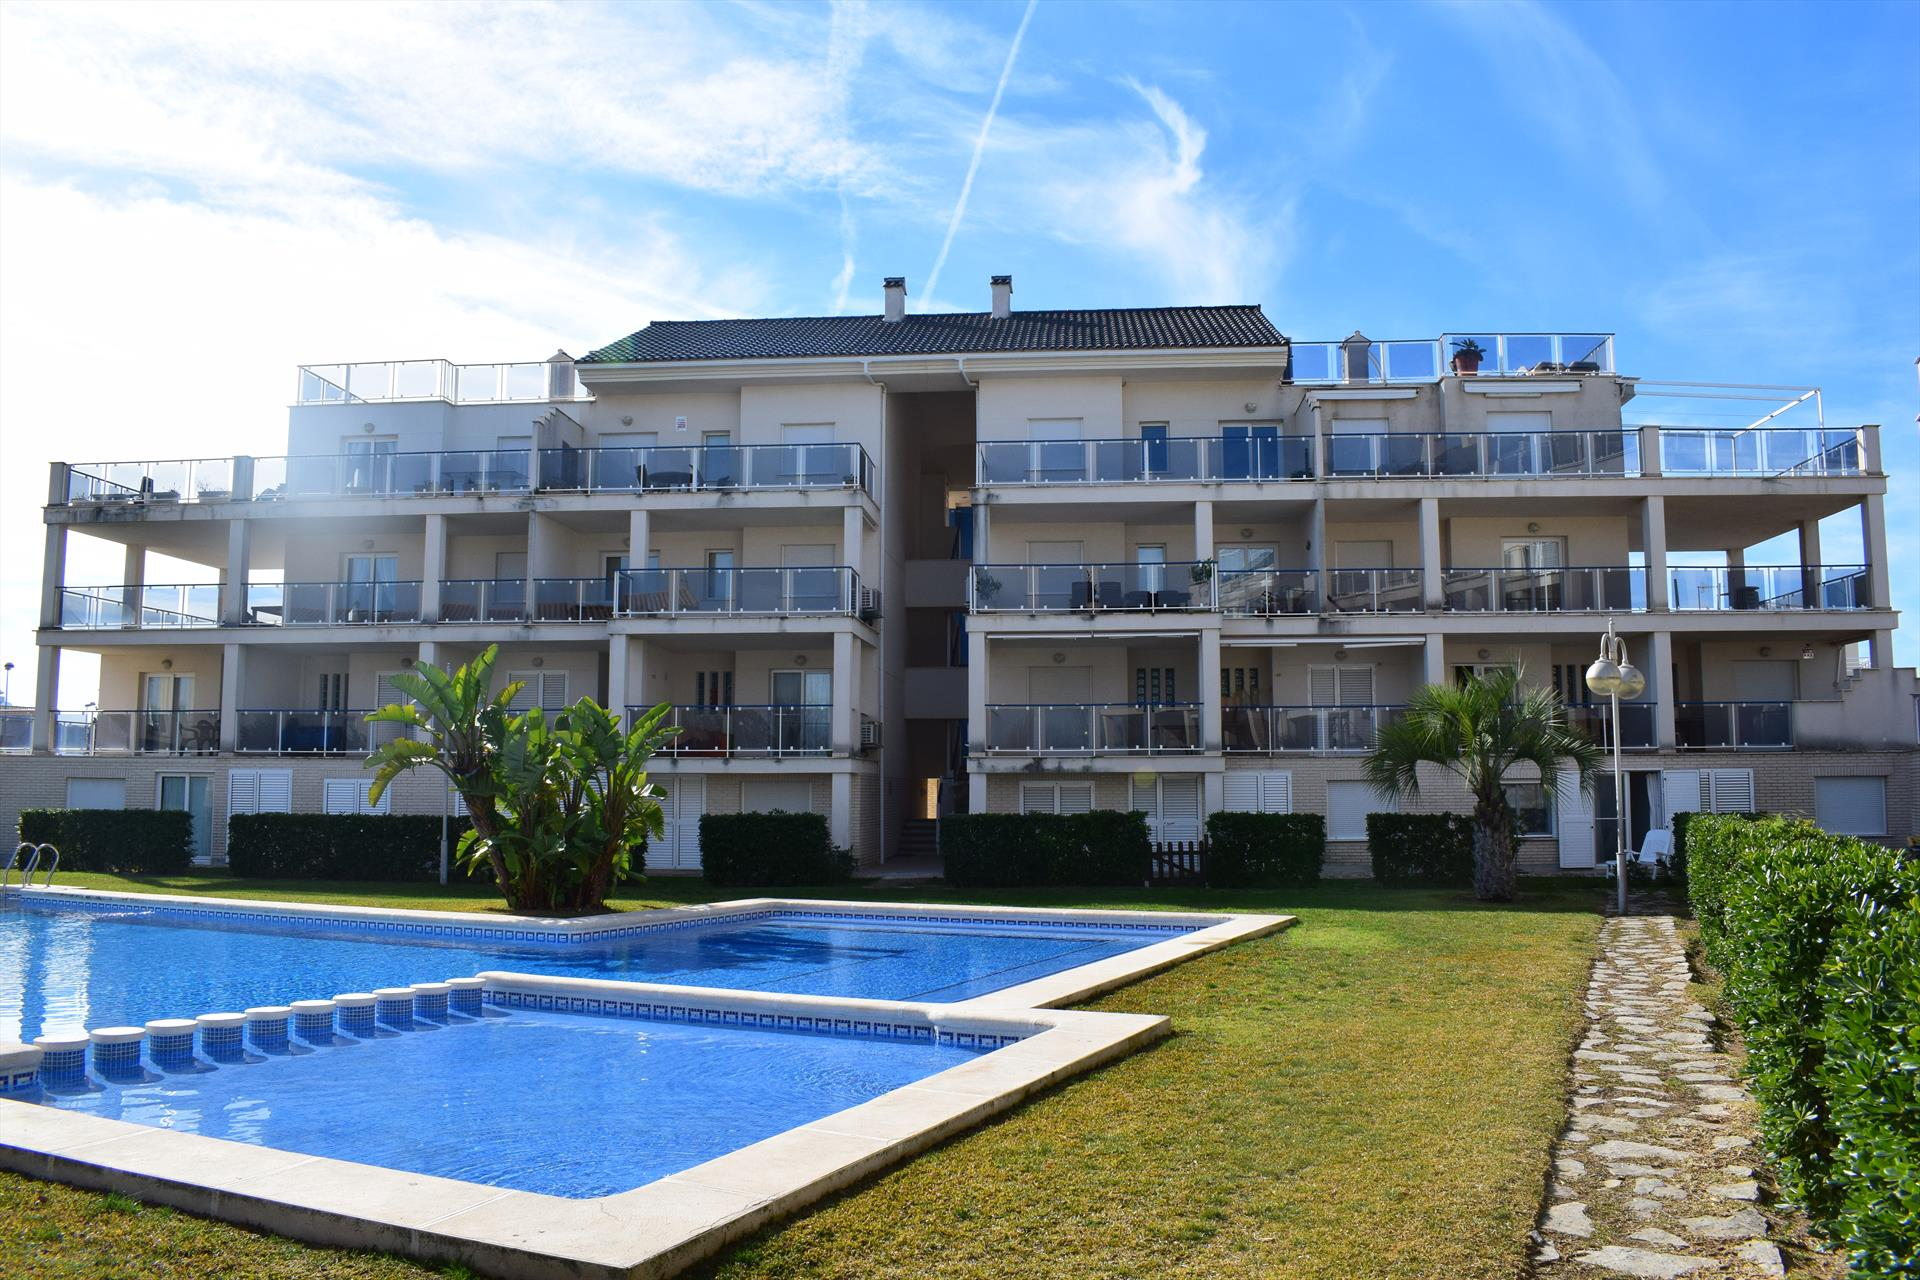 Vora Golf II Playa Rabdells AP150, Beautiful and cheerful apartment in Oliva, on the Costa Blanca, Spain  with communal pool for 8 persons.....